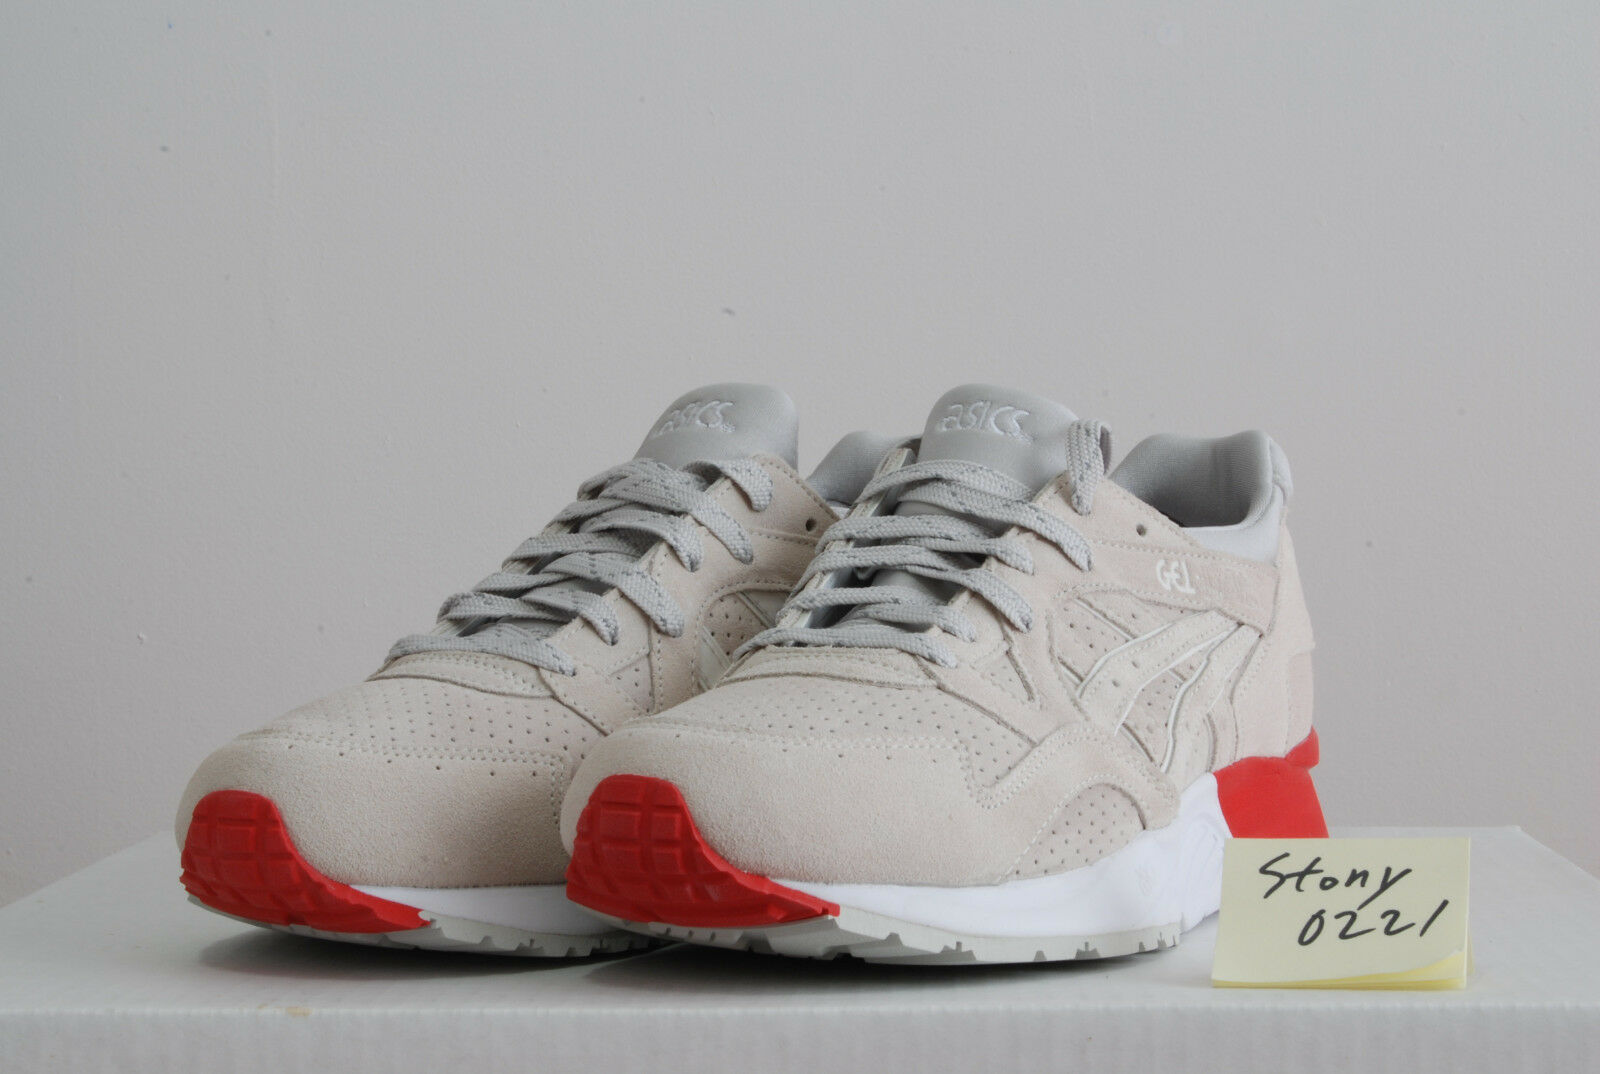 Asics Gel Lyte 5 x Concepts 8 ball